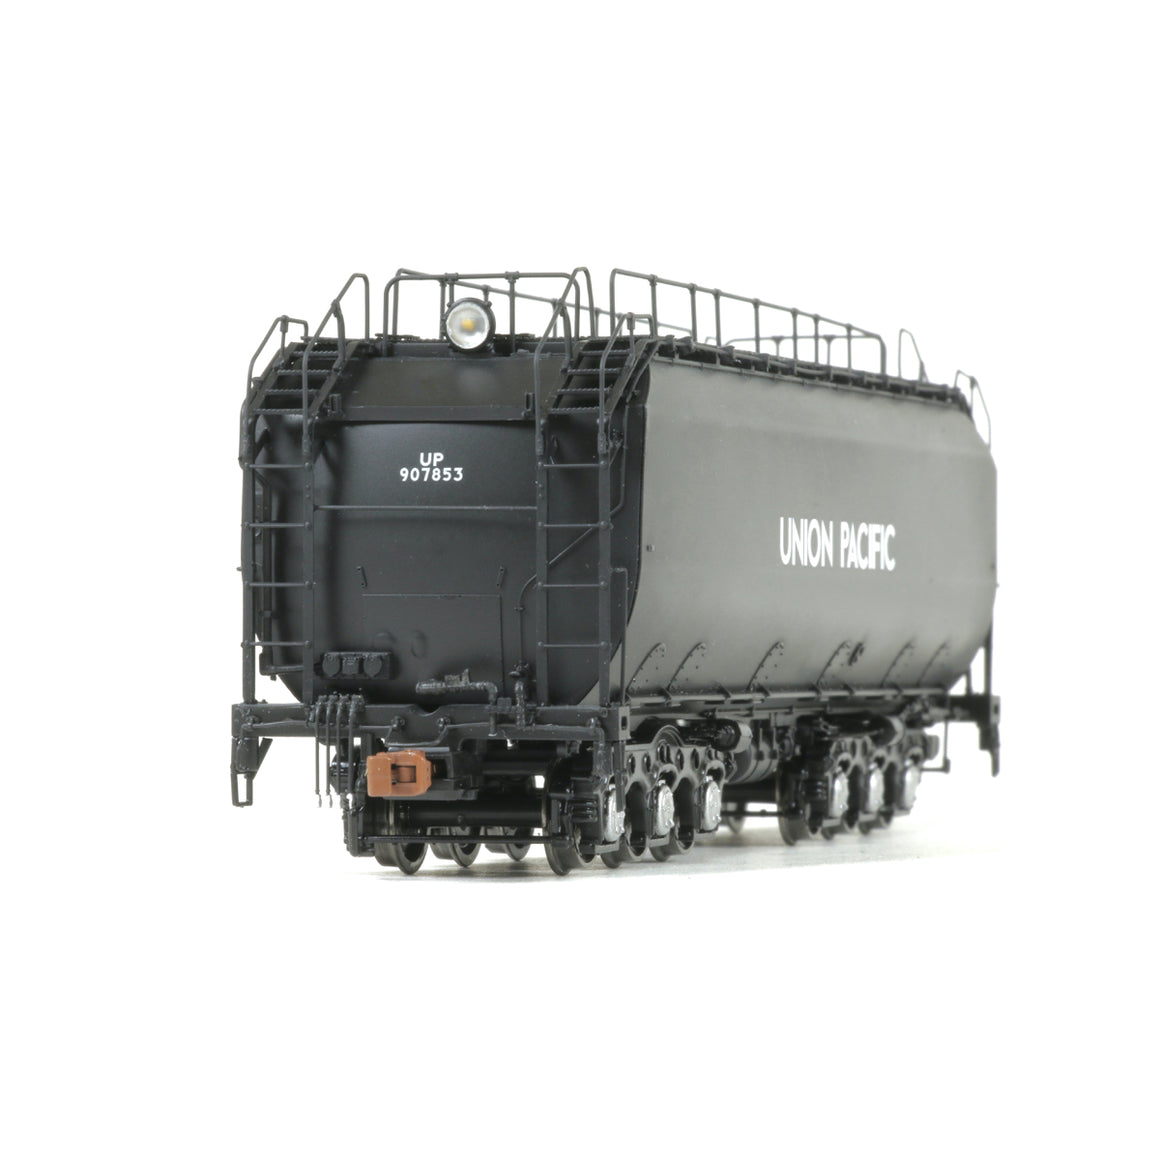 HO Scale: Rivet Counter: Union Pacific 23C Fuel Tender - No. 907853 - Black